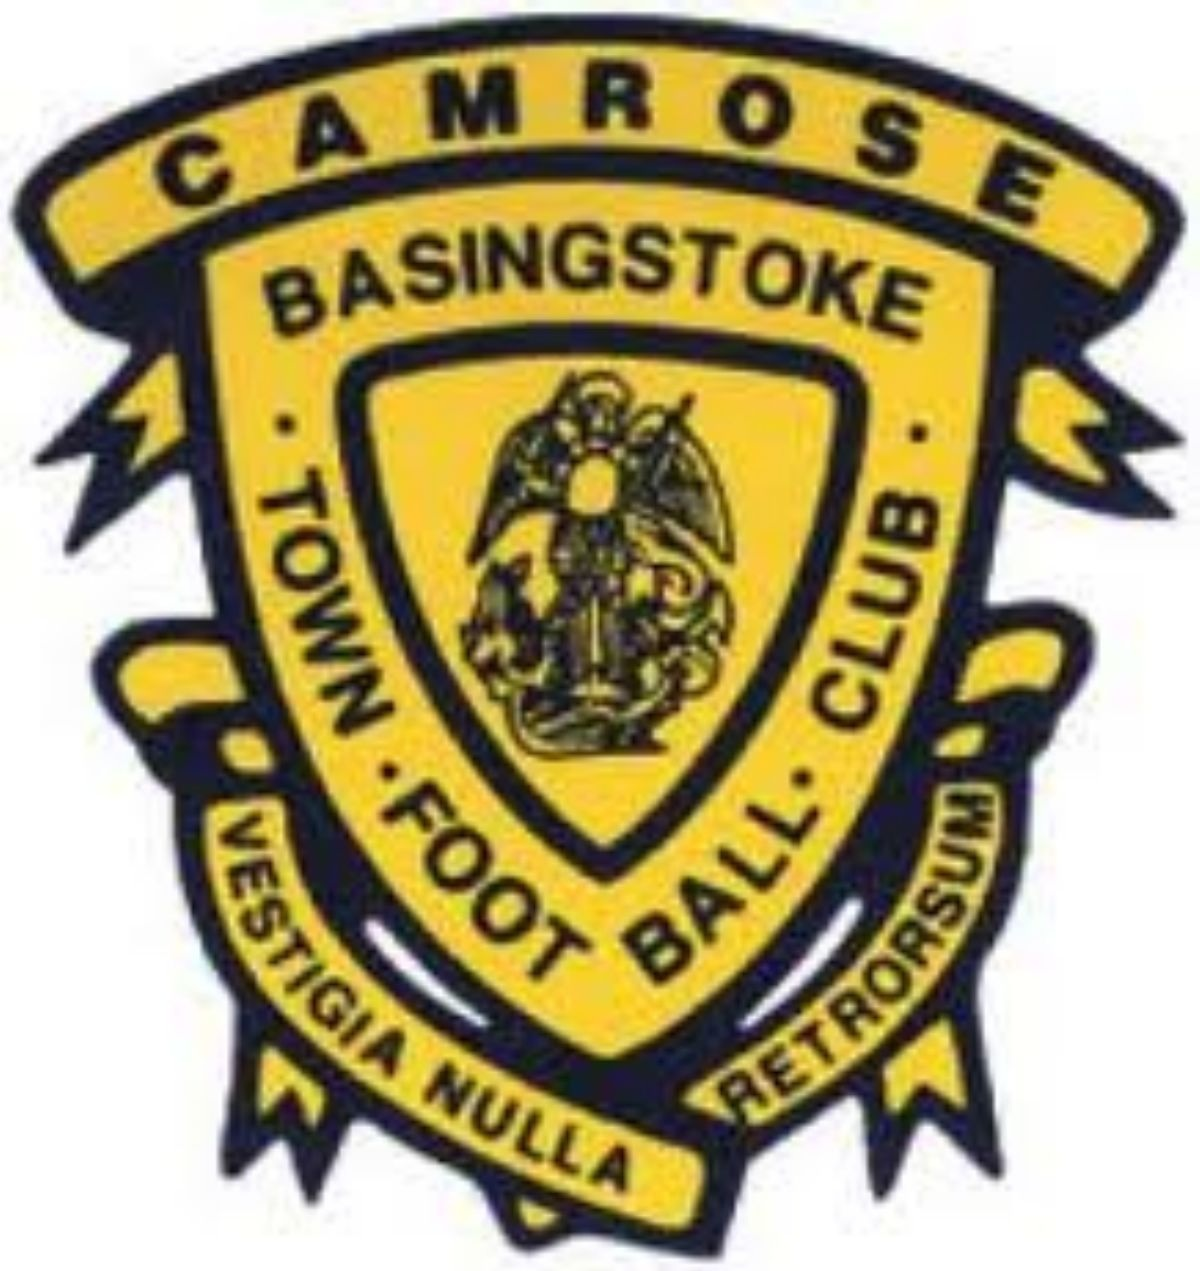 REPORT - Eastleigh 2-1 Basingstoke Town